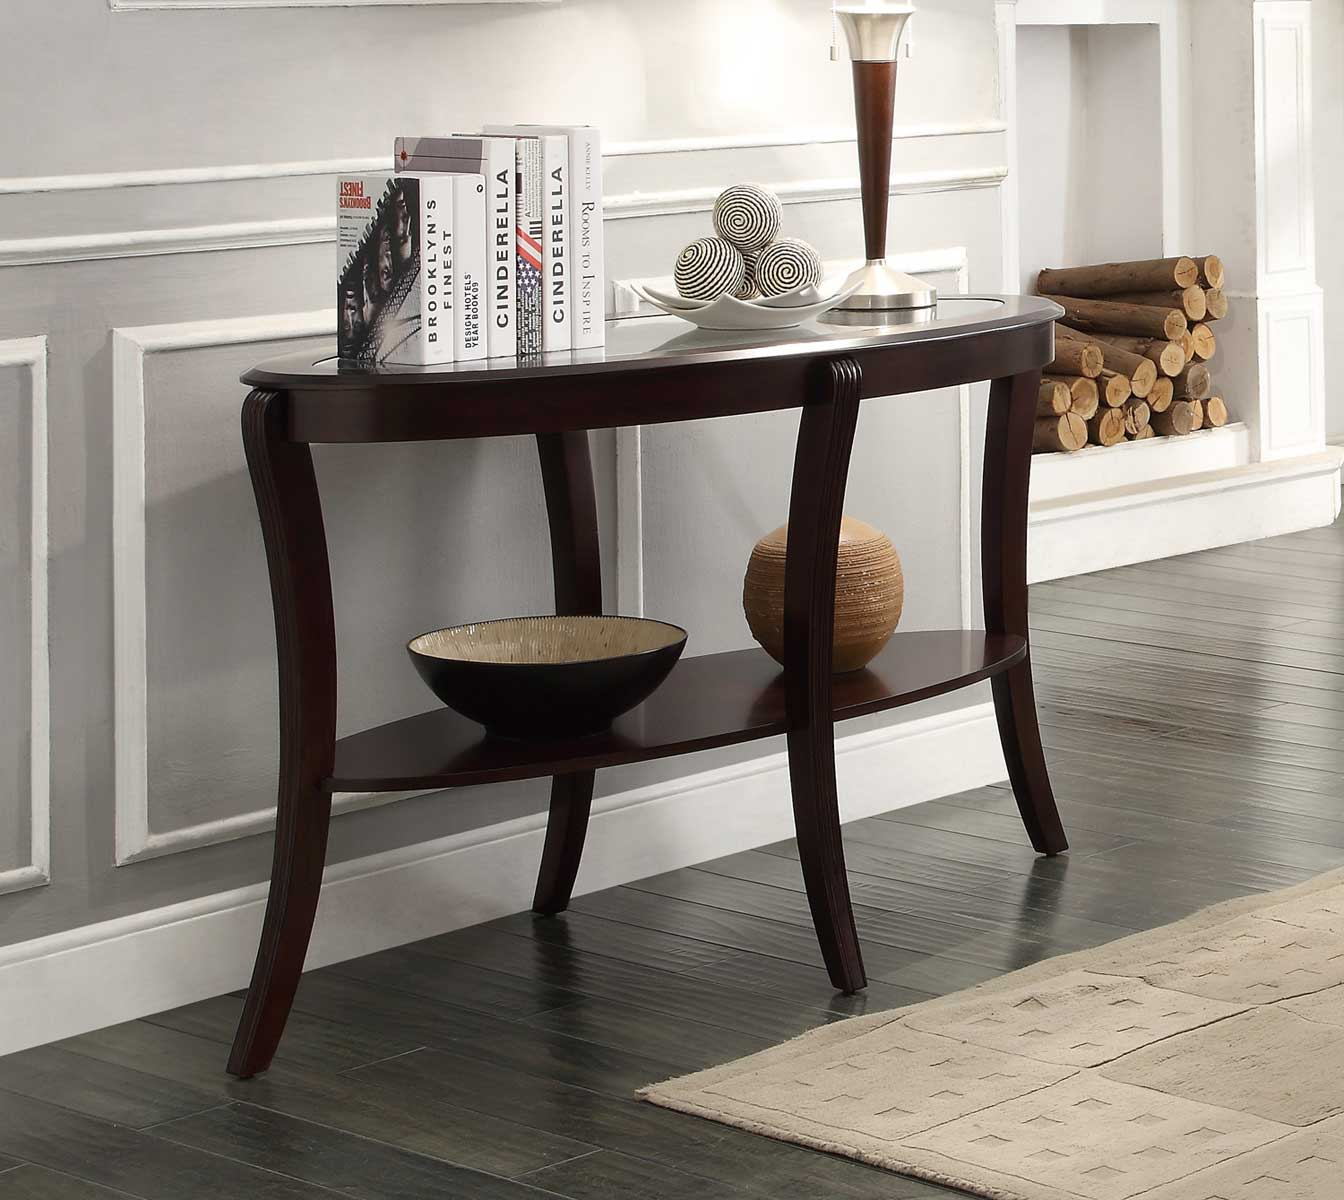 Homelegance Pierre Sofa Table with Glass Insert